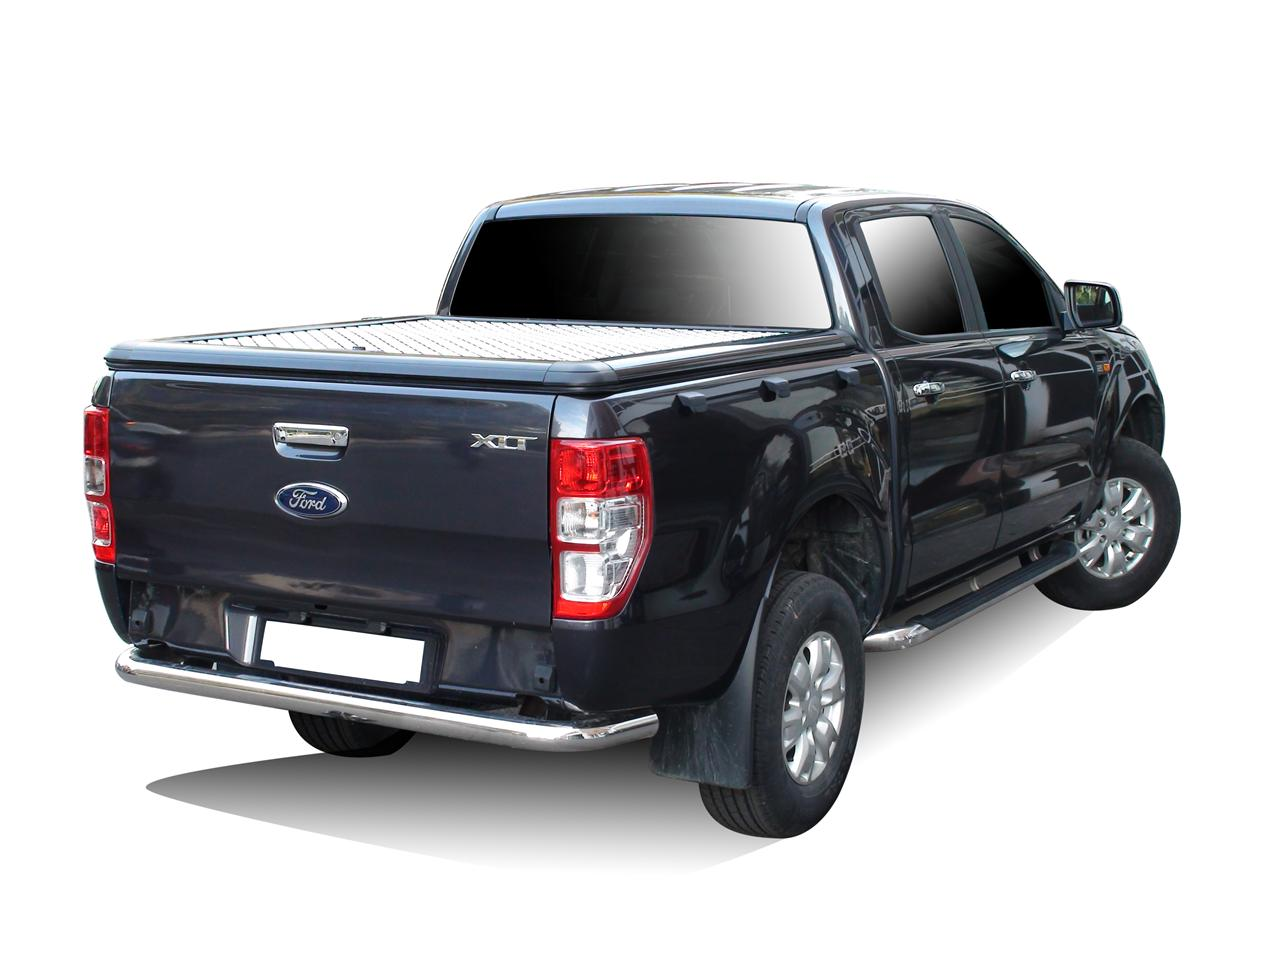 couvre benne aluminium ford ranger double cab 2012. Black Bedroom Furniture Sets. Home Design Ideas